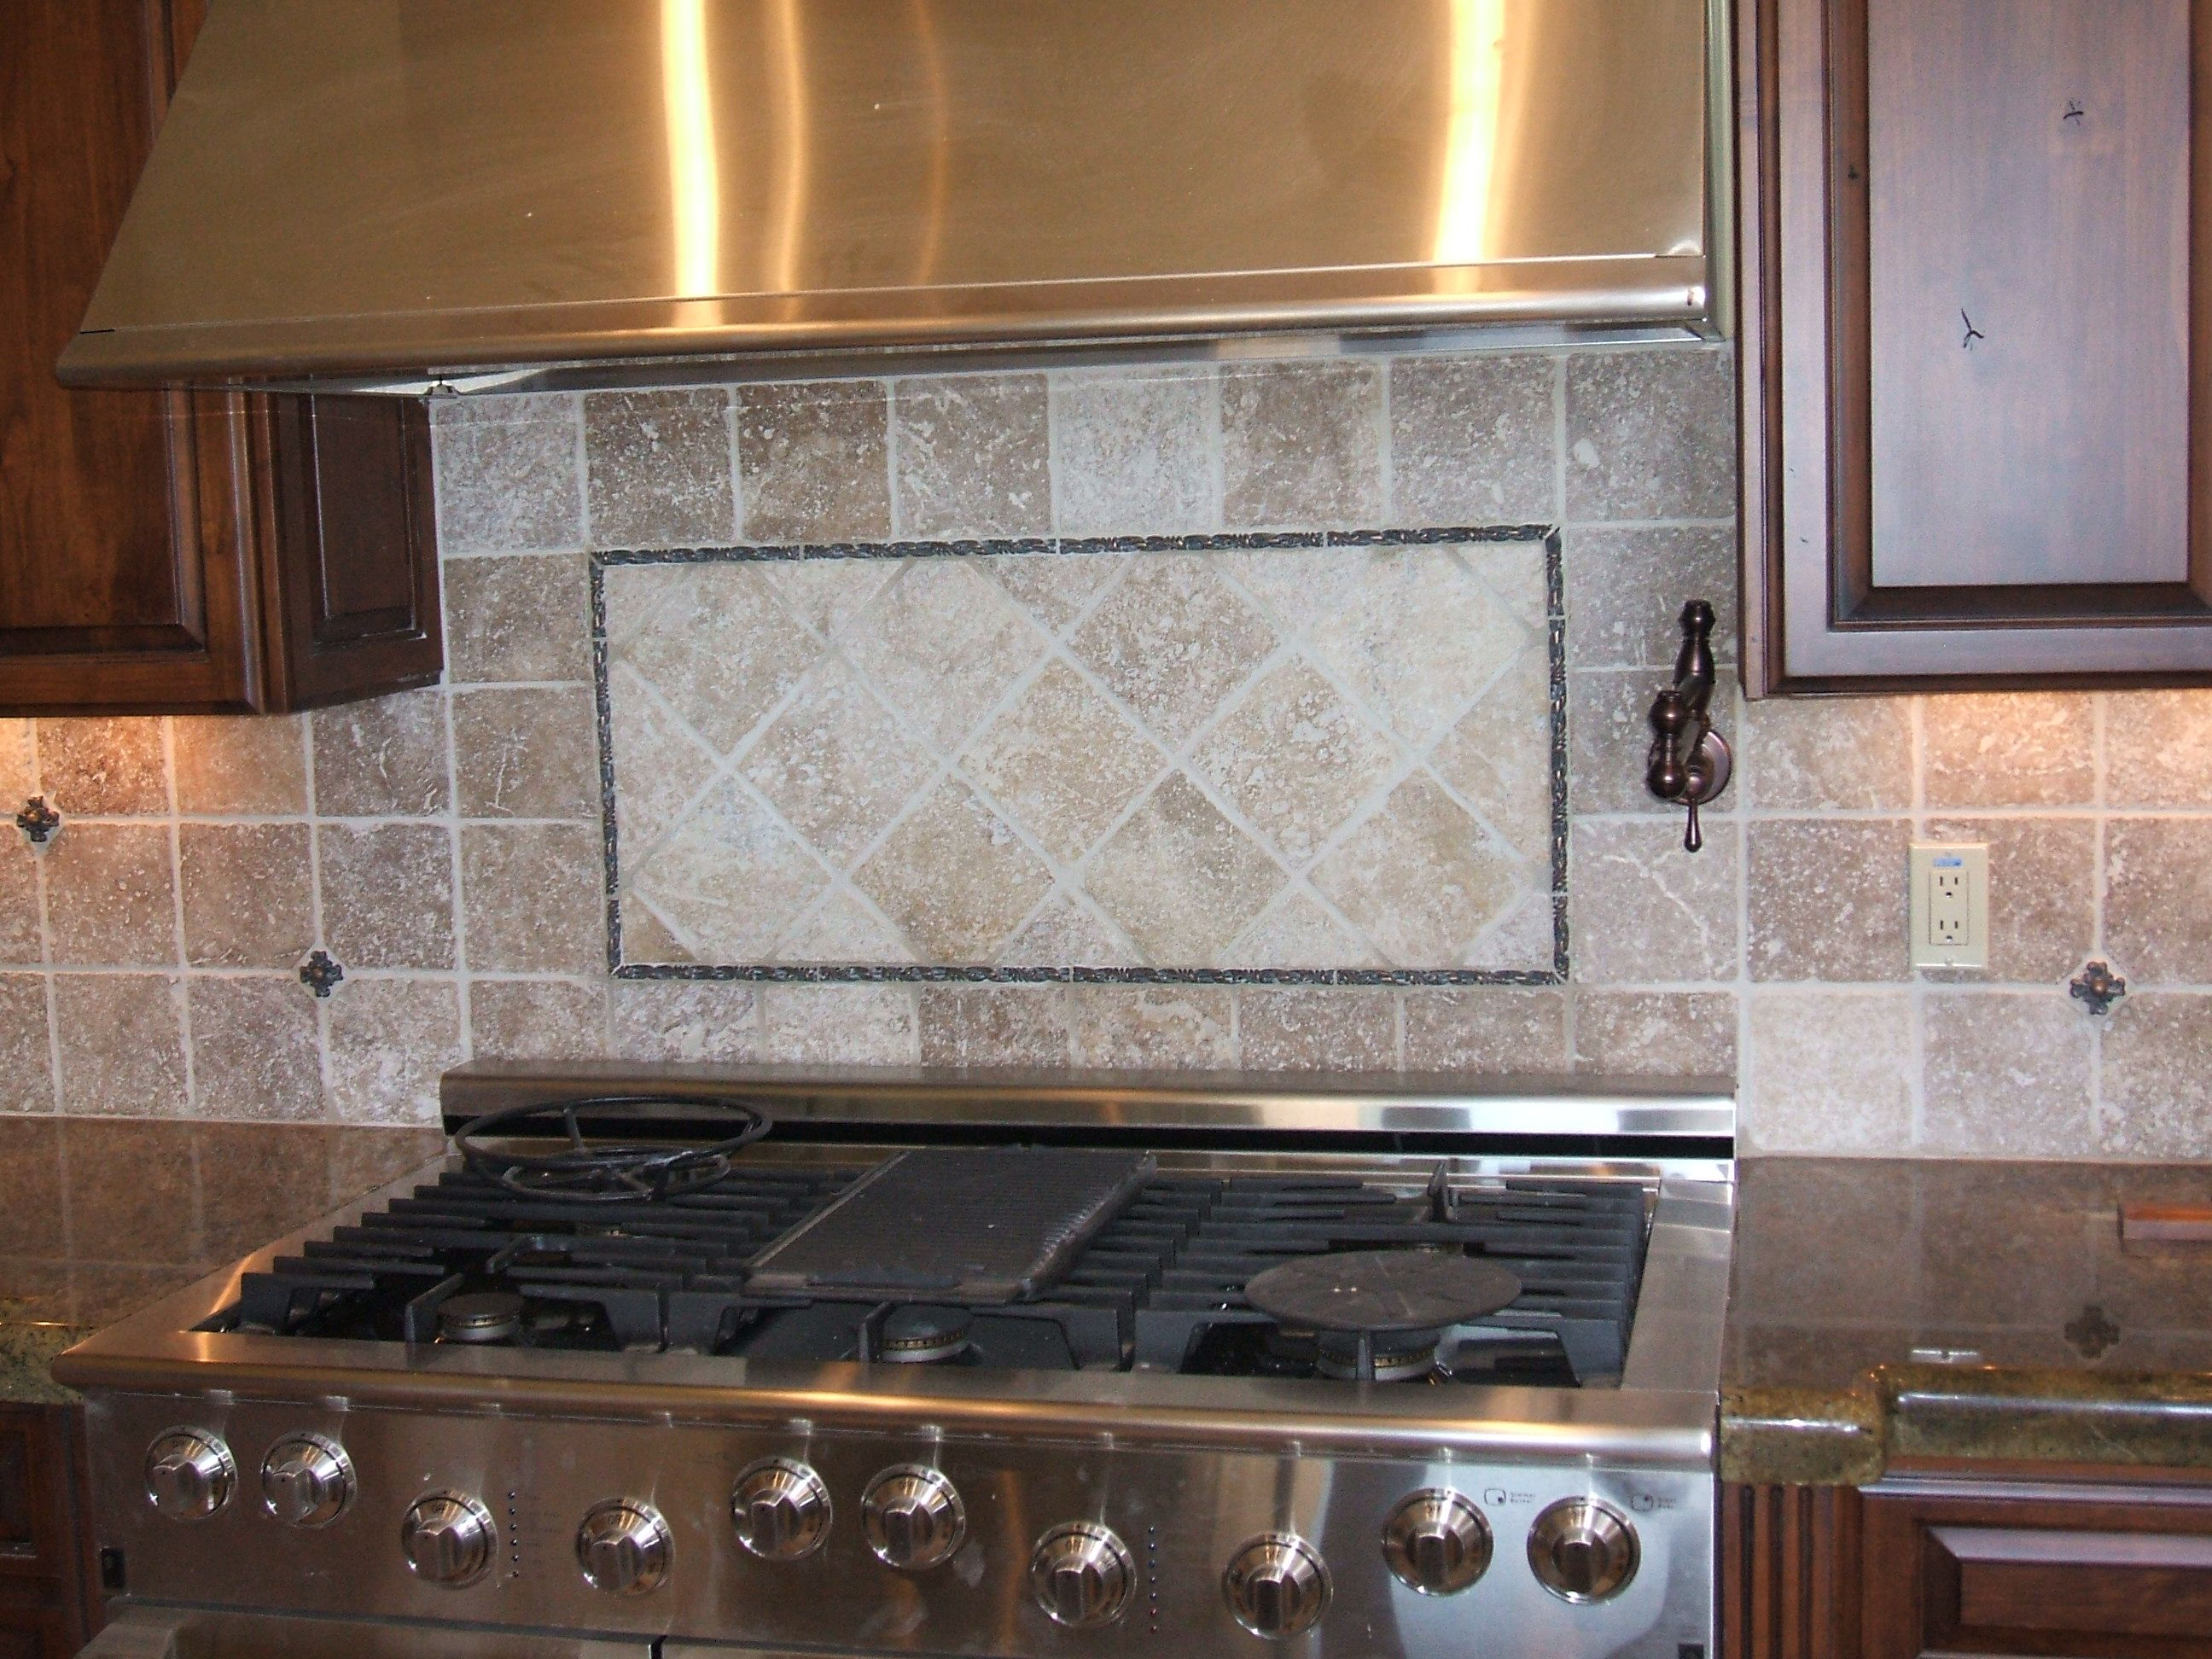 Appealing Design Of The Kitchen Areas With Brown Wooden Cabinets And Grey Tile Backsplash Ideas